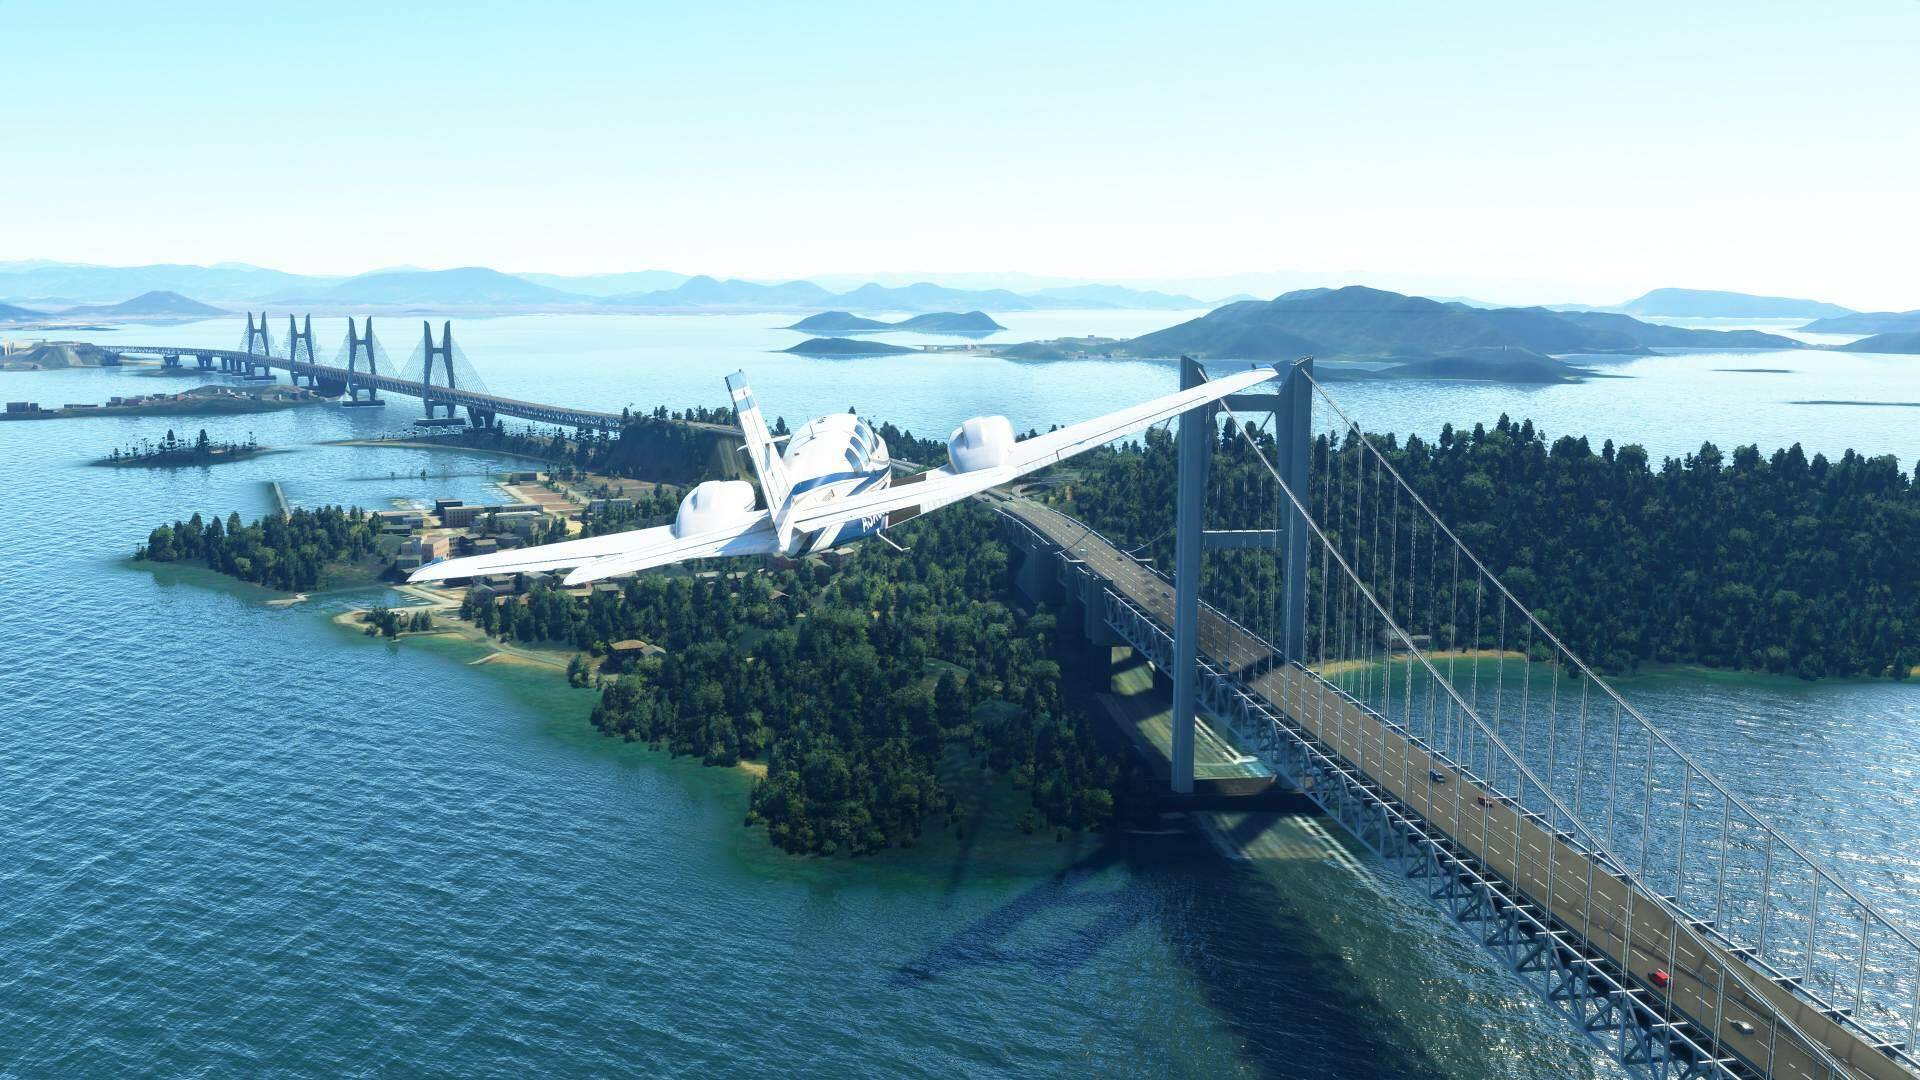 Microsoft Flight Simulator's First World Update Is an Upgraded Tour of Japan